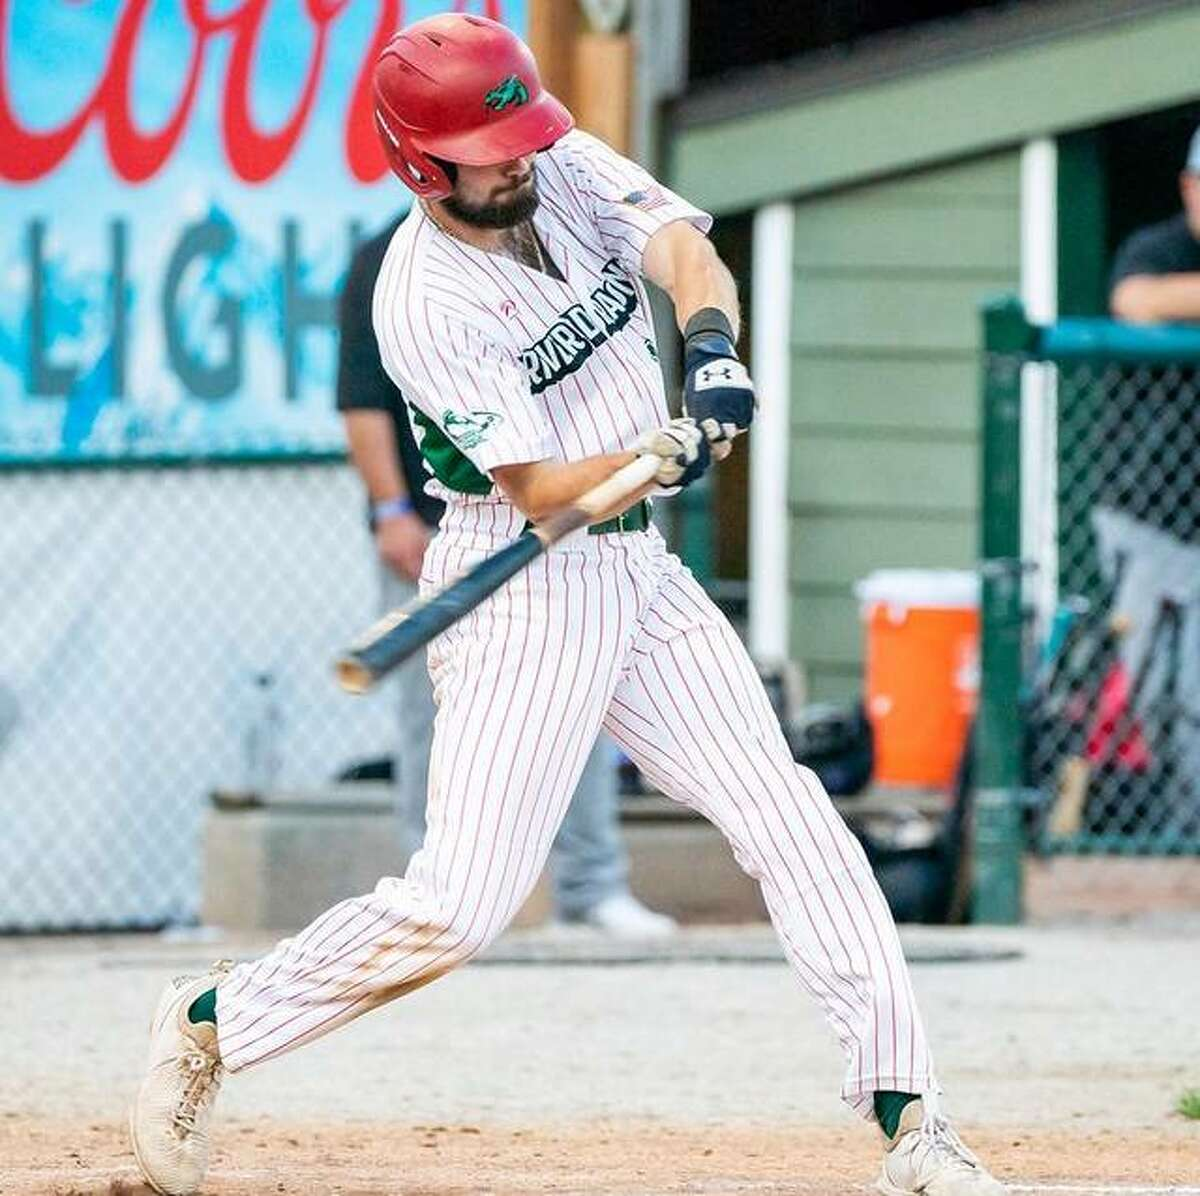 The Alton River Dragons' Josh Johnson had two hits, including a triple and one RBI, in Wednesday night's 8-3 Prospect League victory over the Quincy Gems at QU Stadium.